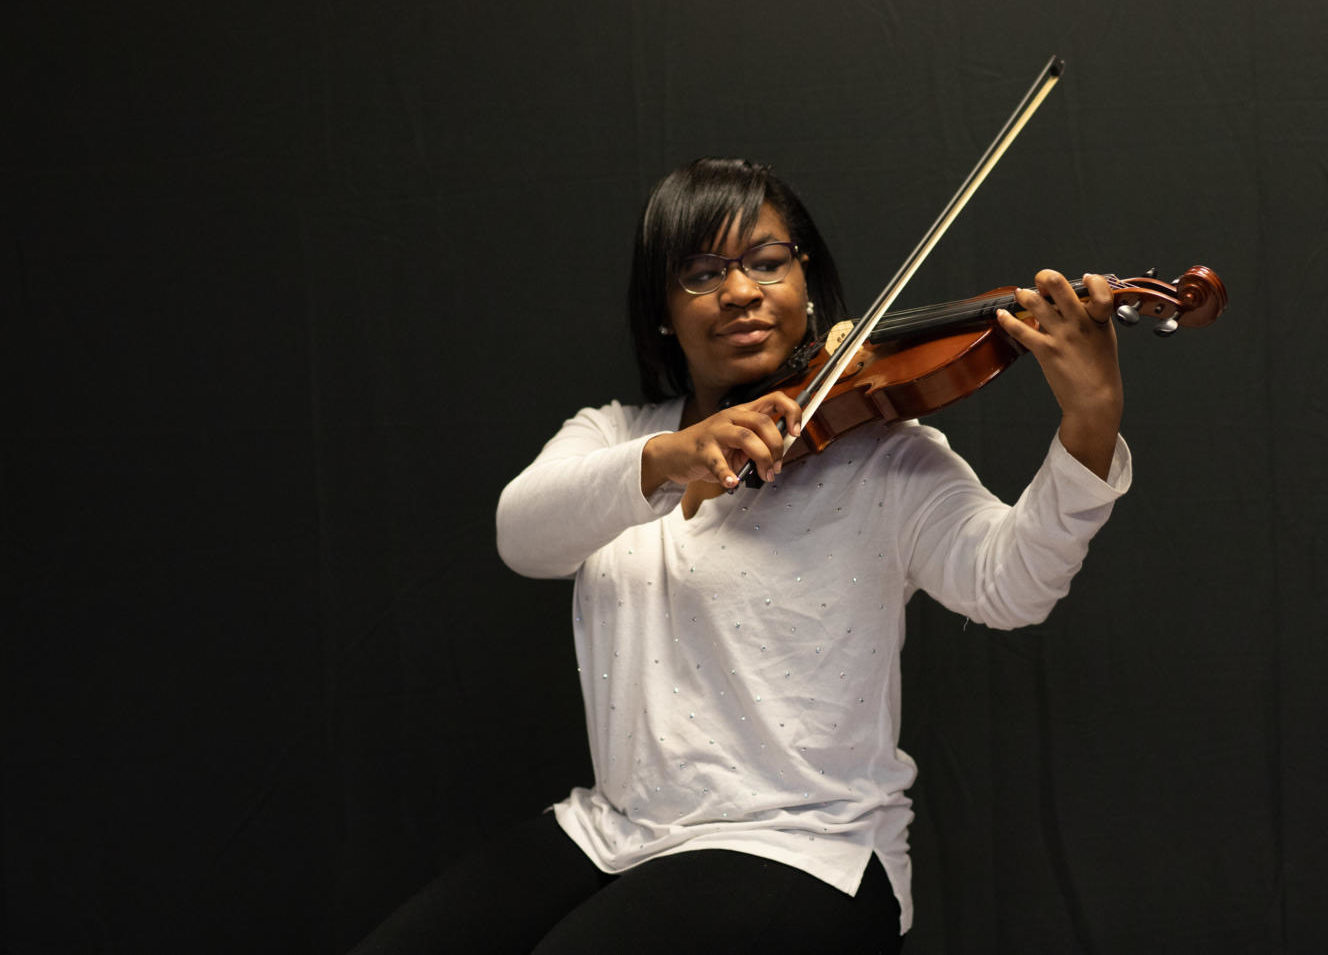 Aria Ellis has been playing viola for 8 years now and does not plan on stopping.